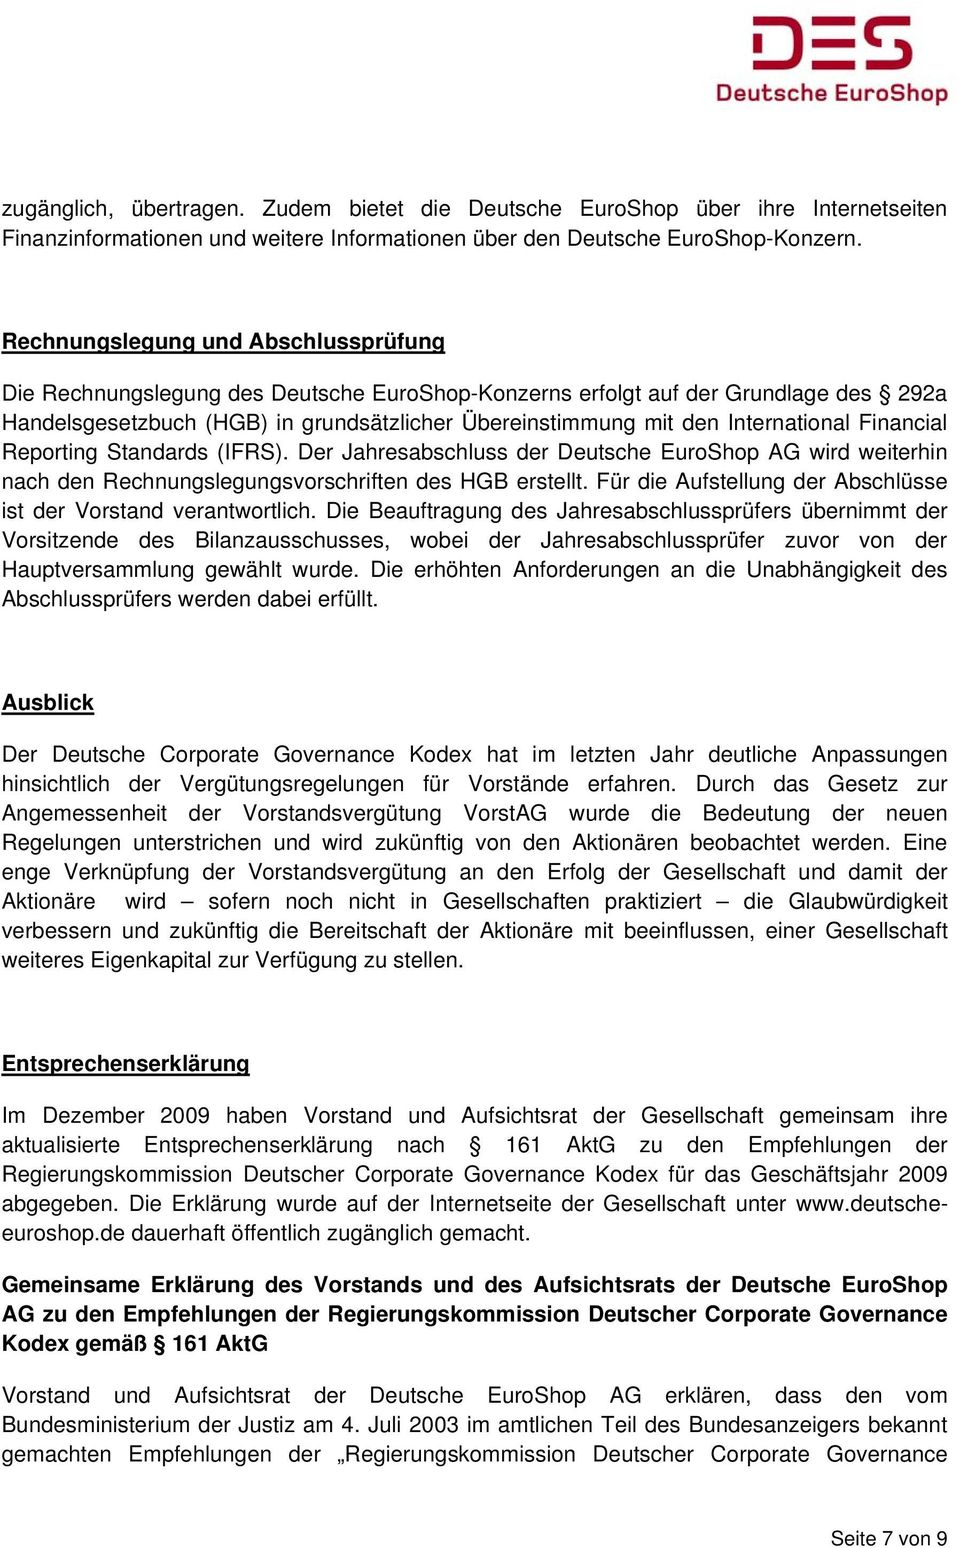 International Financial Reporting Standards (IFRS). Der Jahresabschluss der Deutsche EuroShop AG wird weiterhin nach den Rechnungslegungsvorschriften des HGB erstellt.